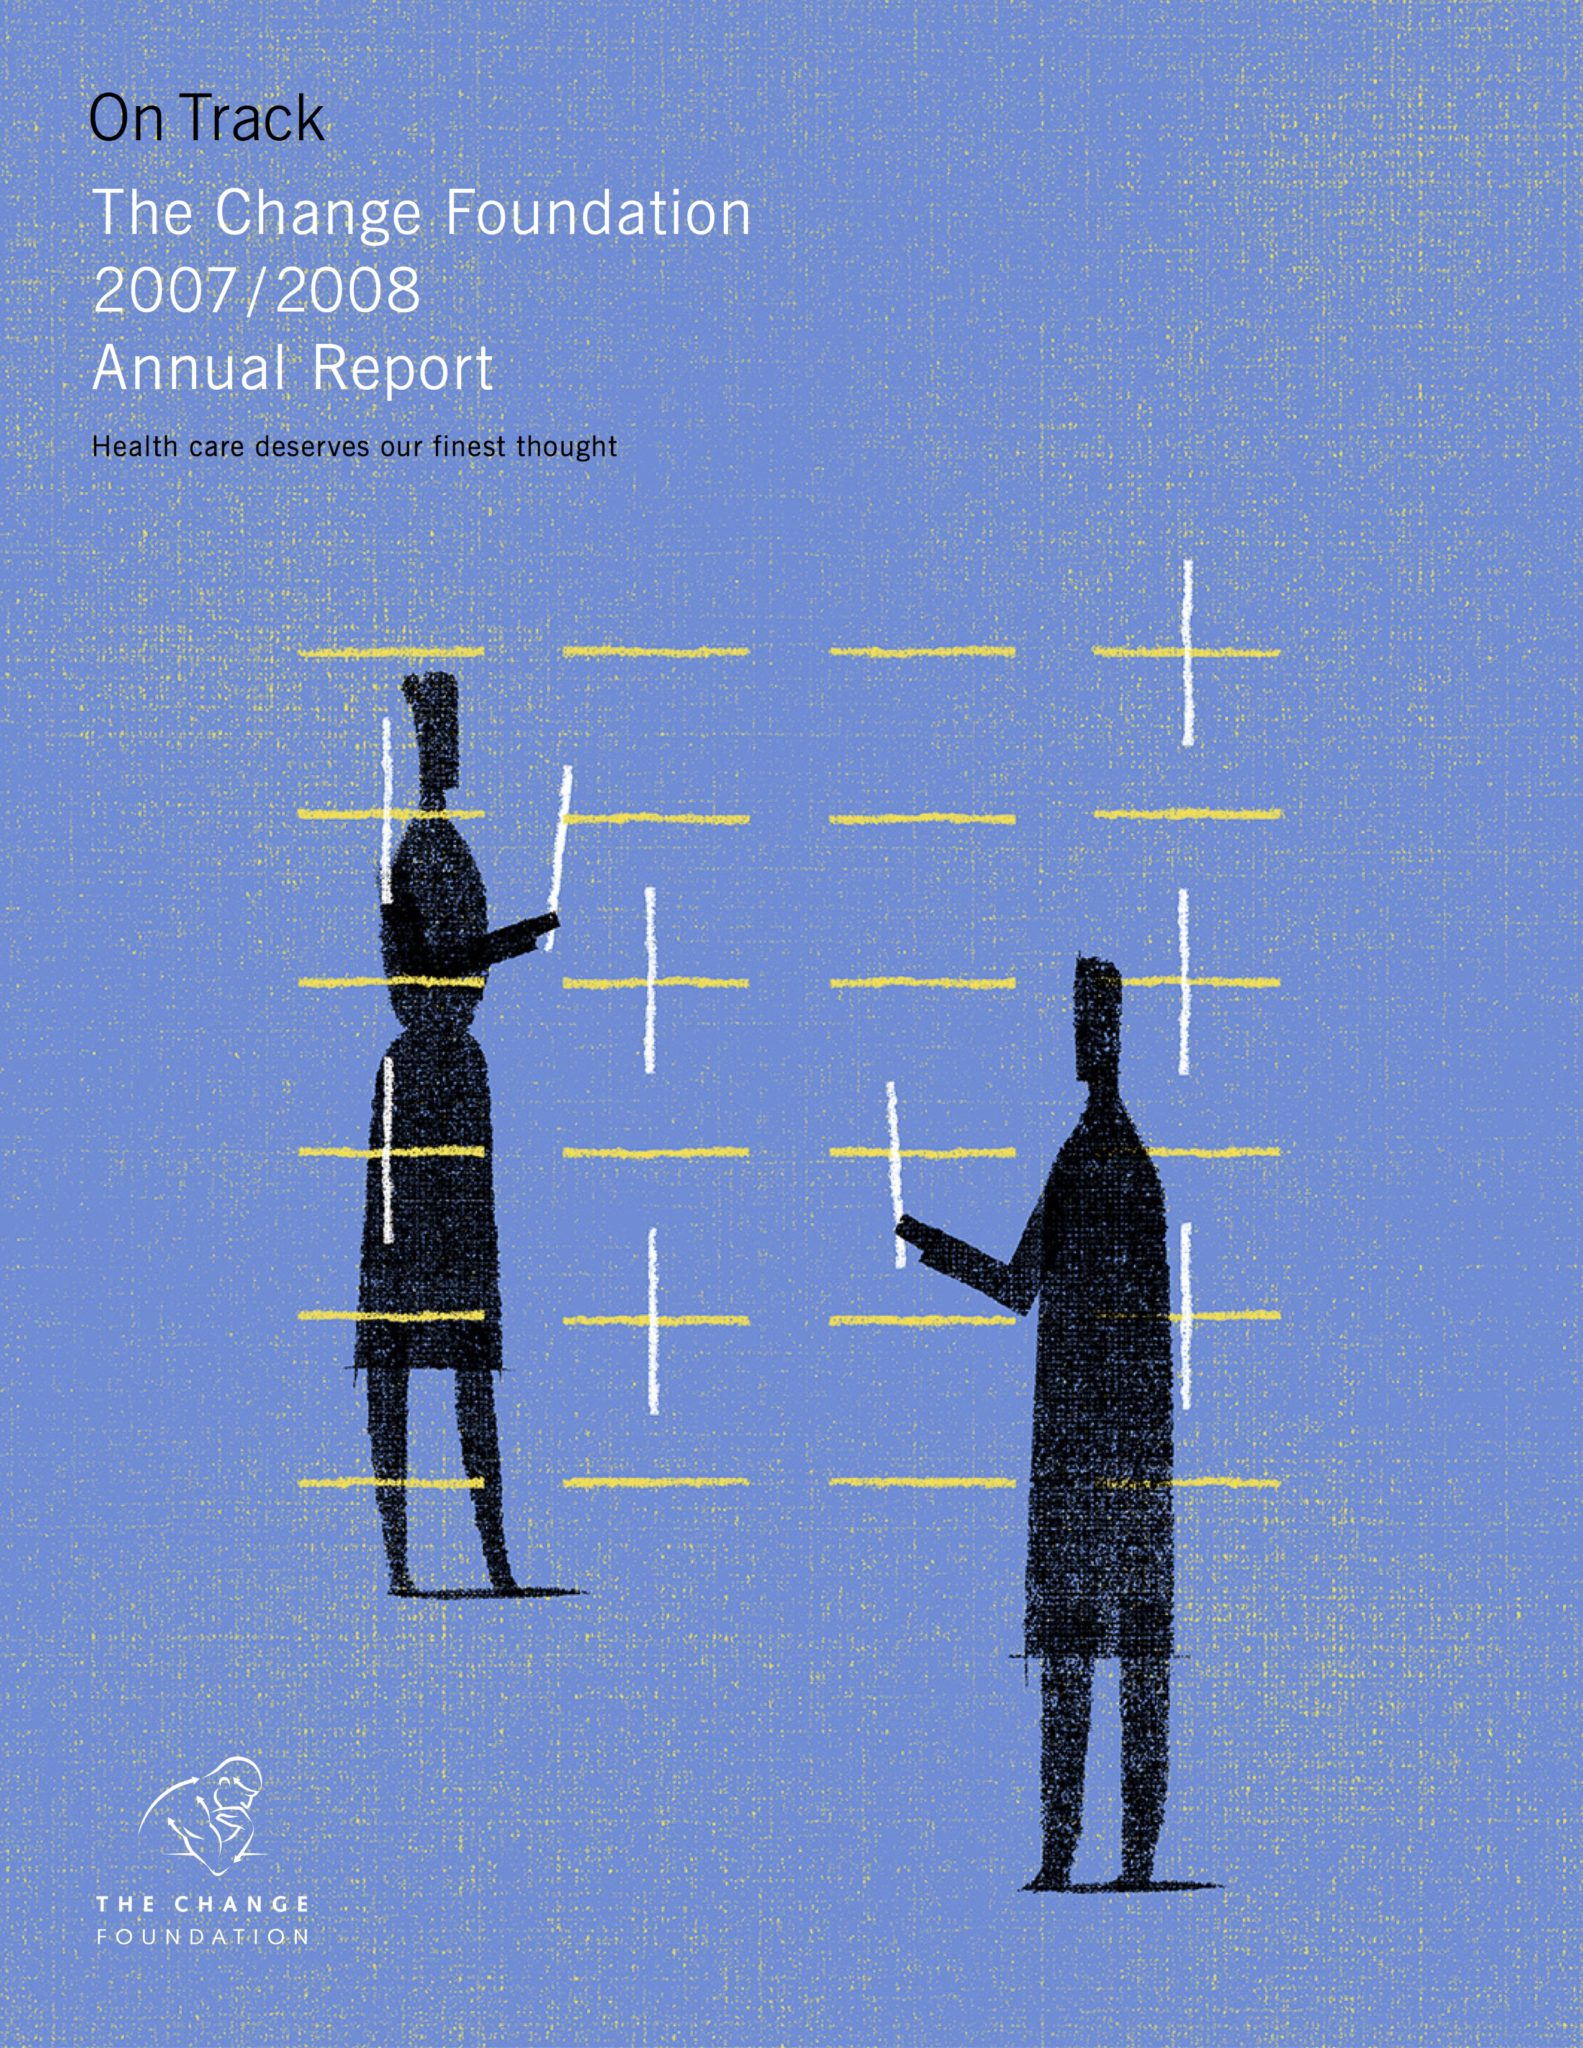 On Track: The Change Foundation 2007/2008 Annual Report